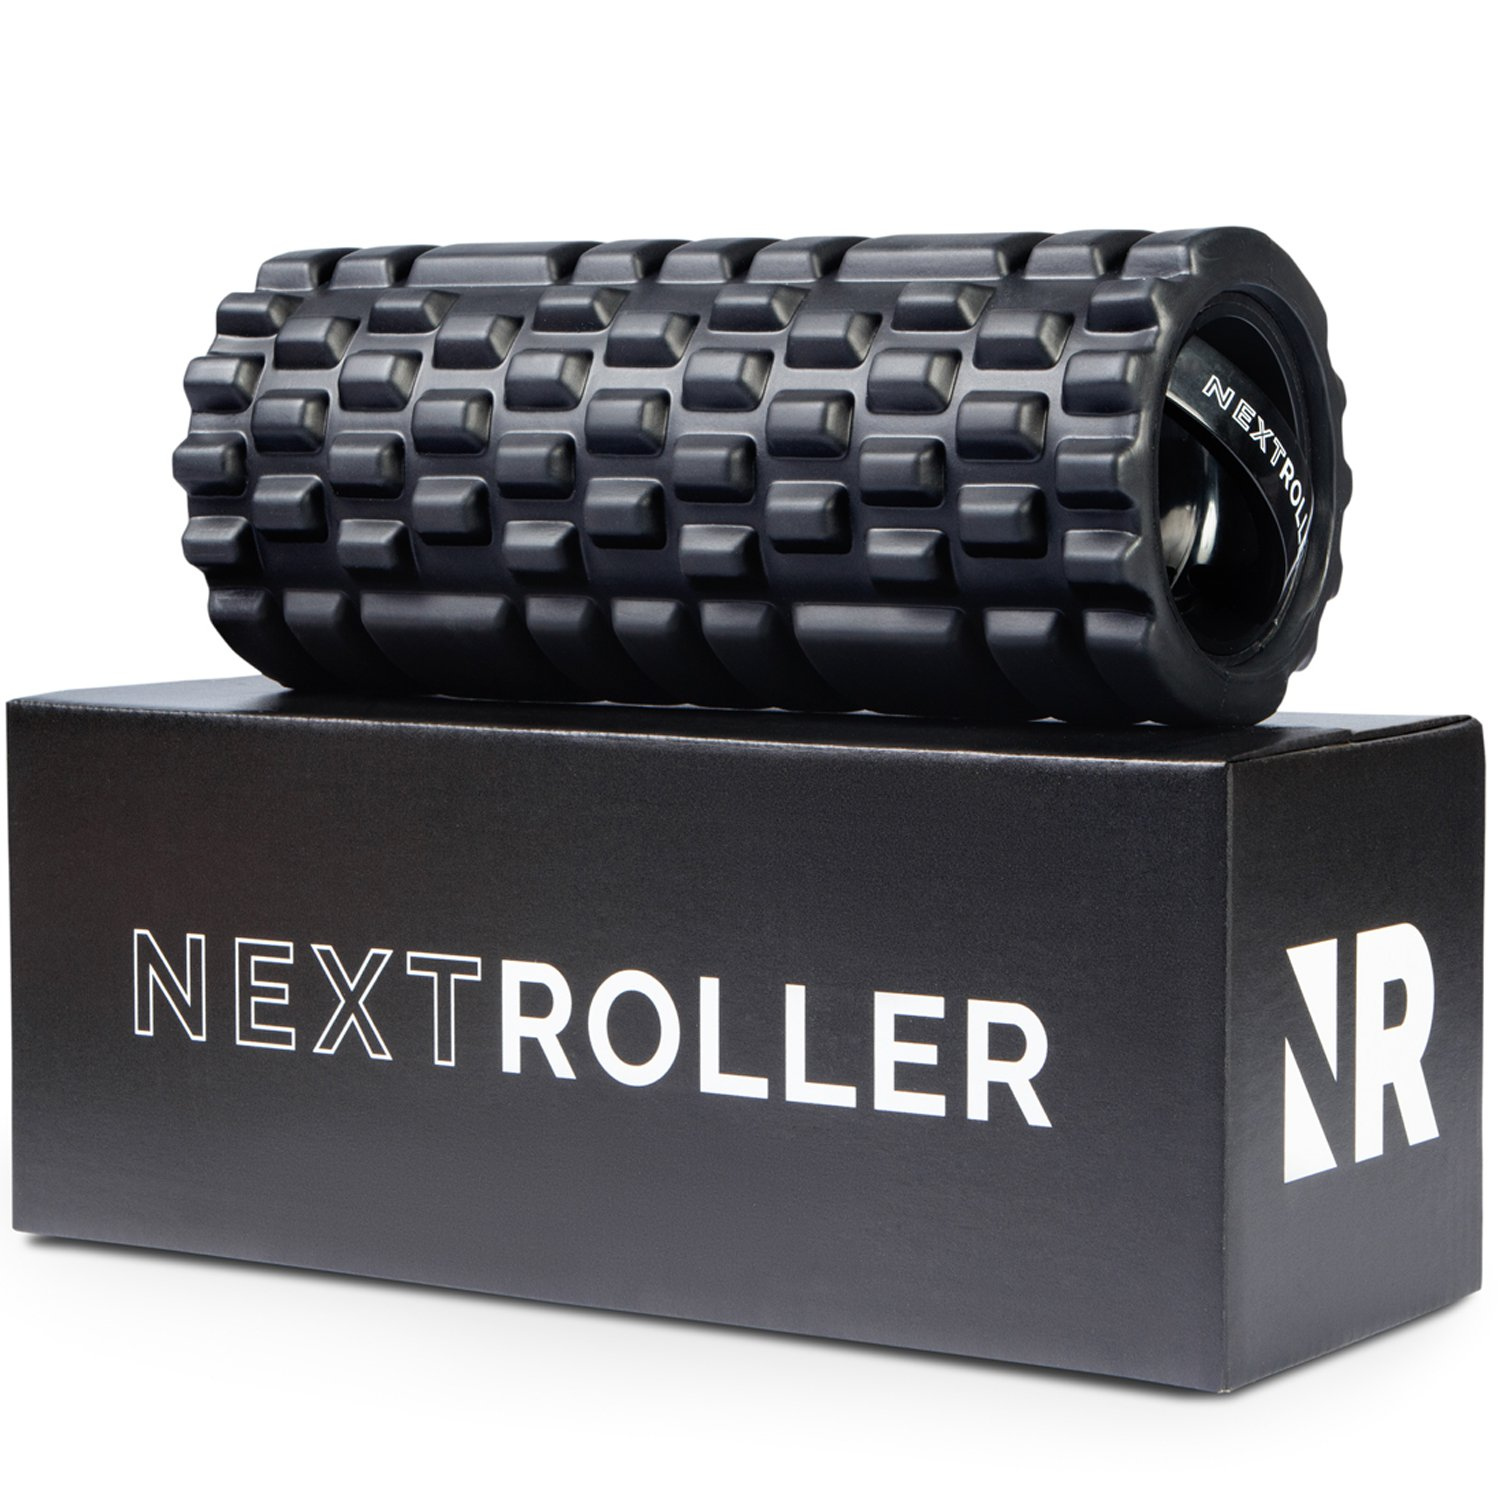 NextRoller 3-Speed Vibrating Foam Roller - High Intensity Vibration for Recovery, Mobility, Pliability Training & Deep Tissue Trigger Point Sports Massage Therapy - Firm Density Electric Back Massager by NextRoller